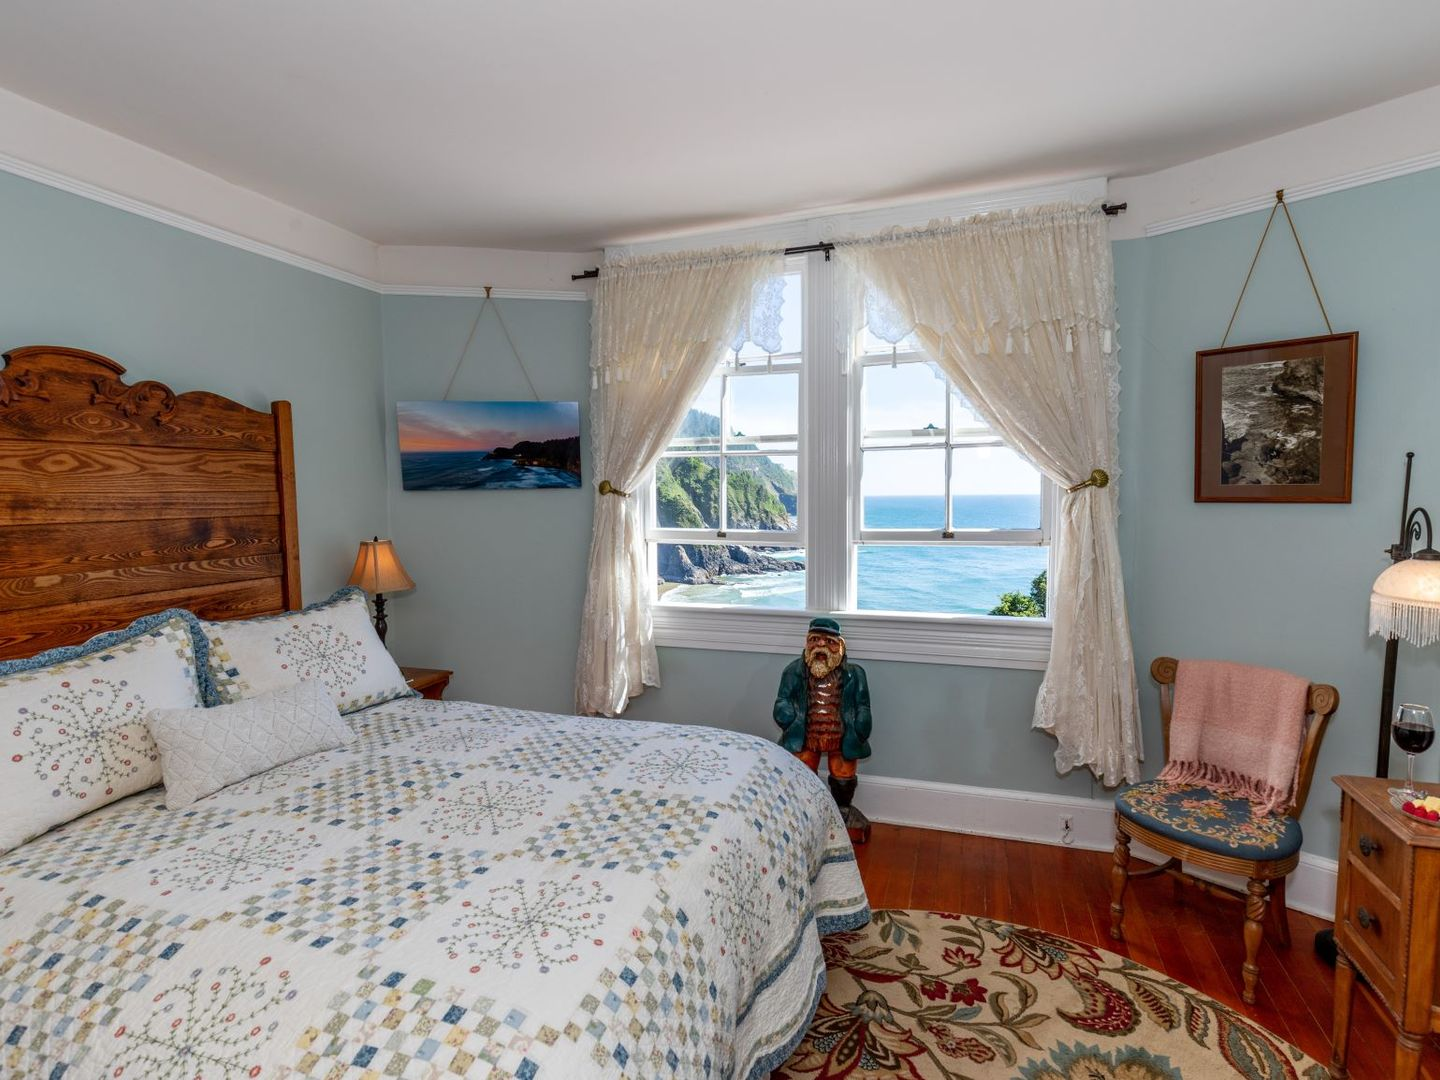 A bedroom with a bed in a room at Heceta Lighthouse B&B.